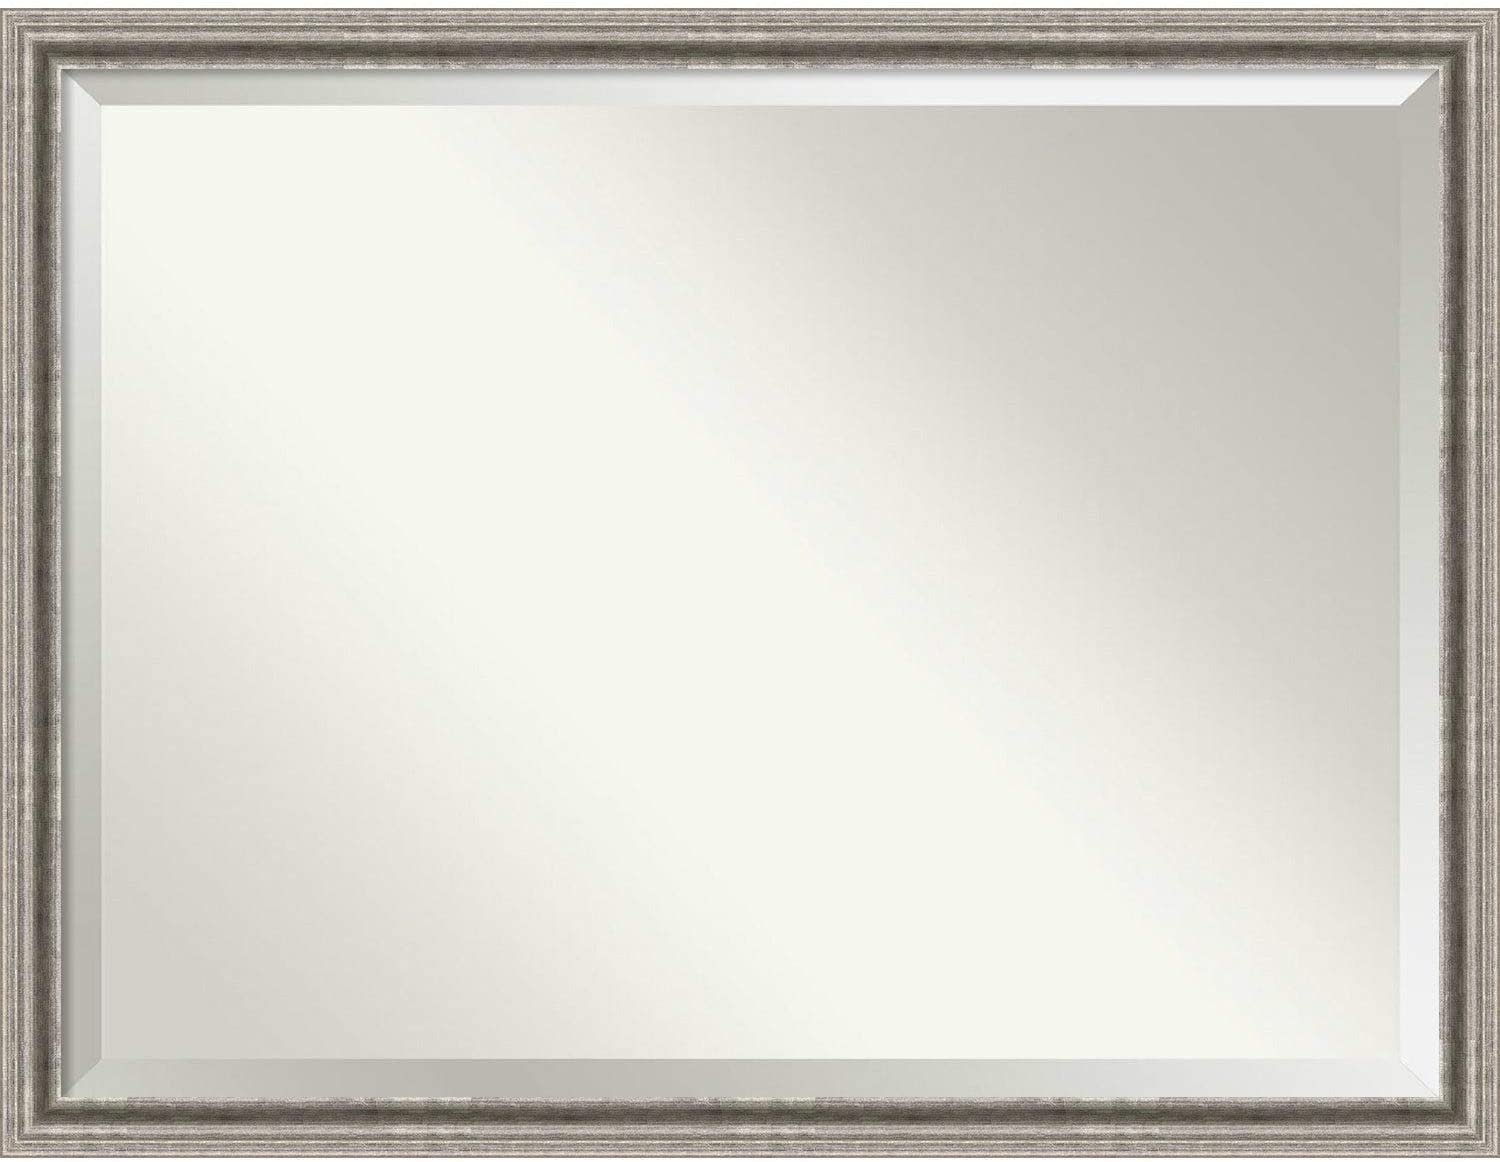 Amazon Com Wall Mirror Oversize Large Bel Volto Silver 43 X 33 Inch Silver Black Oversize Large Modern Contemporary Traditional Beveled Glass Includes Hardware Home Kitchen